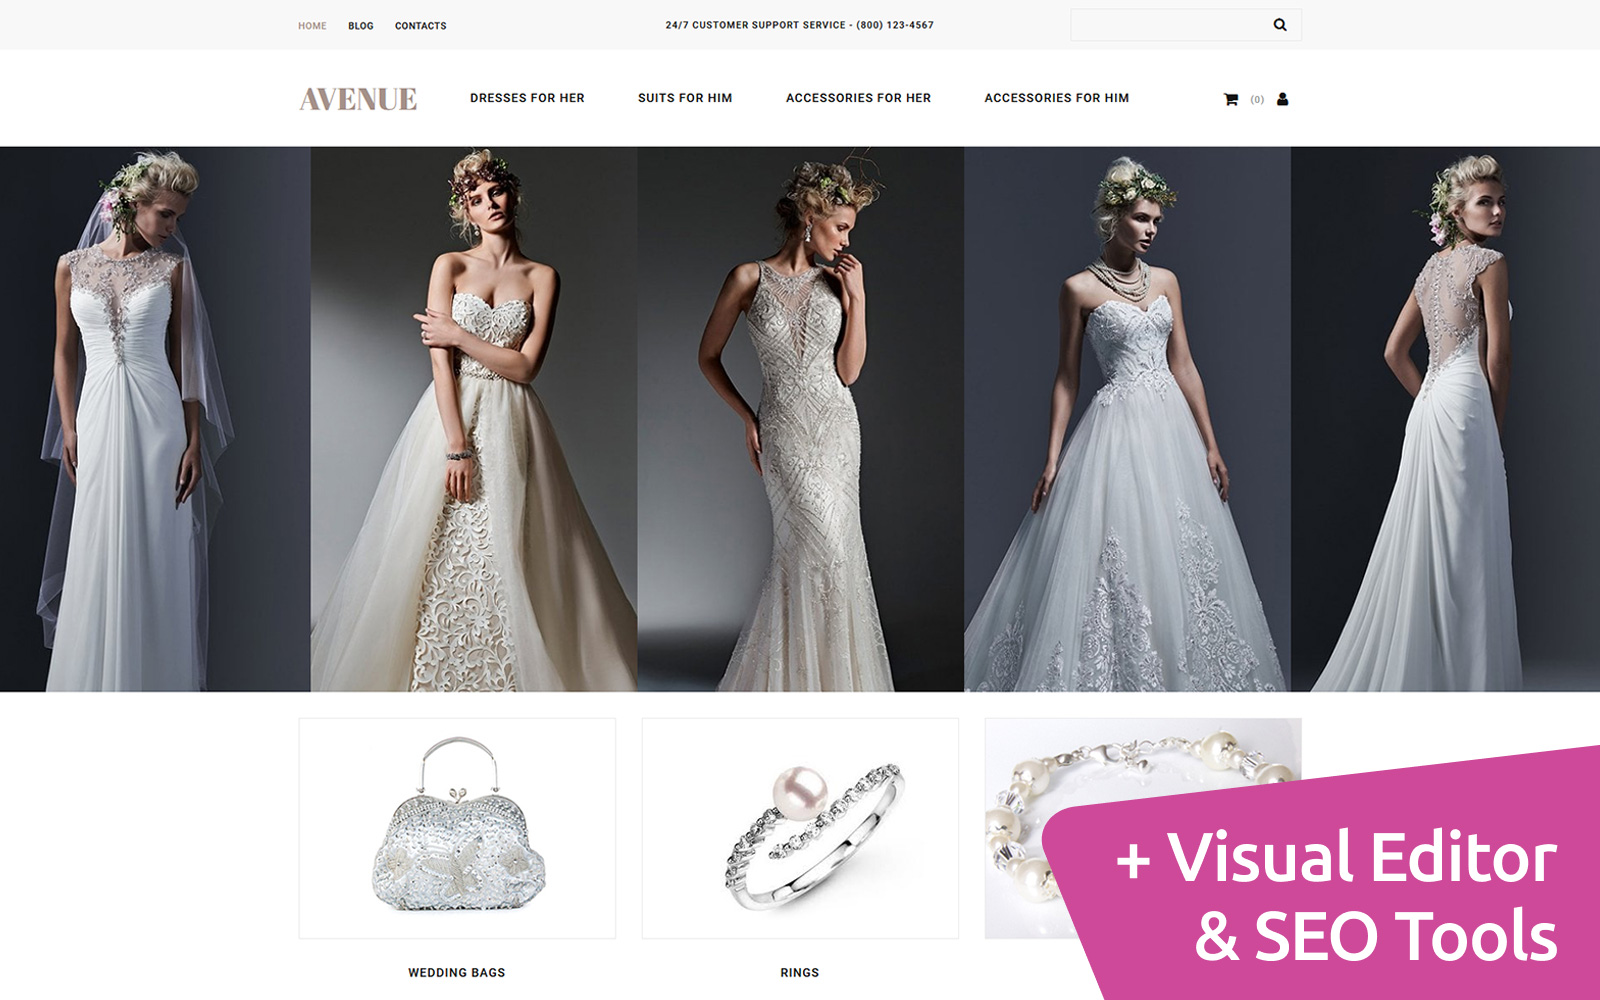 Avenue - Dress Shop MotoCMS Ecommerce Template